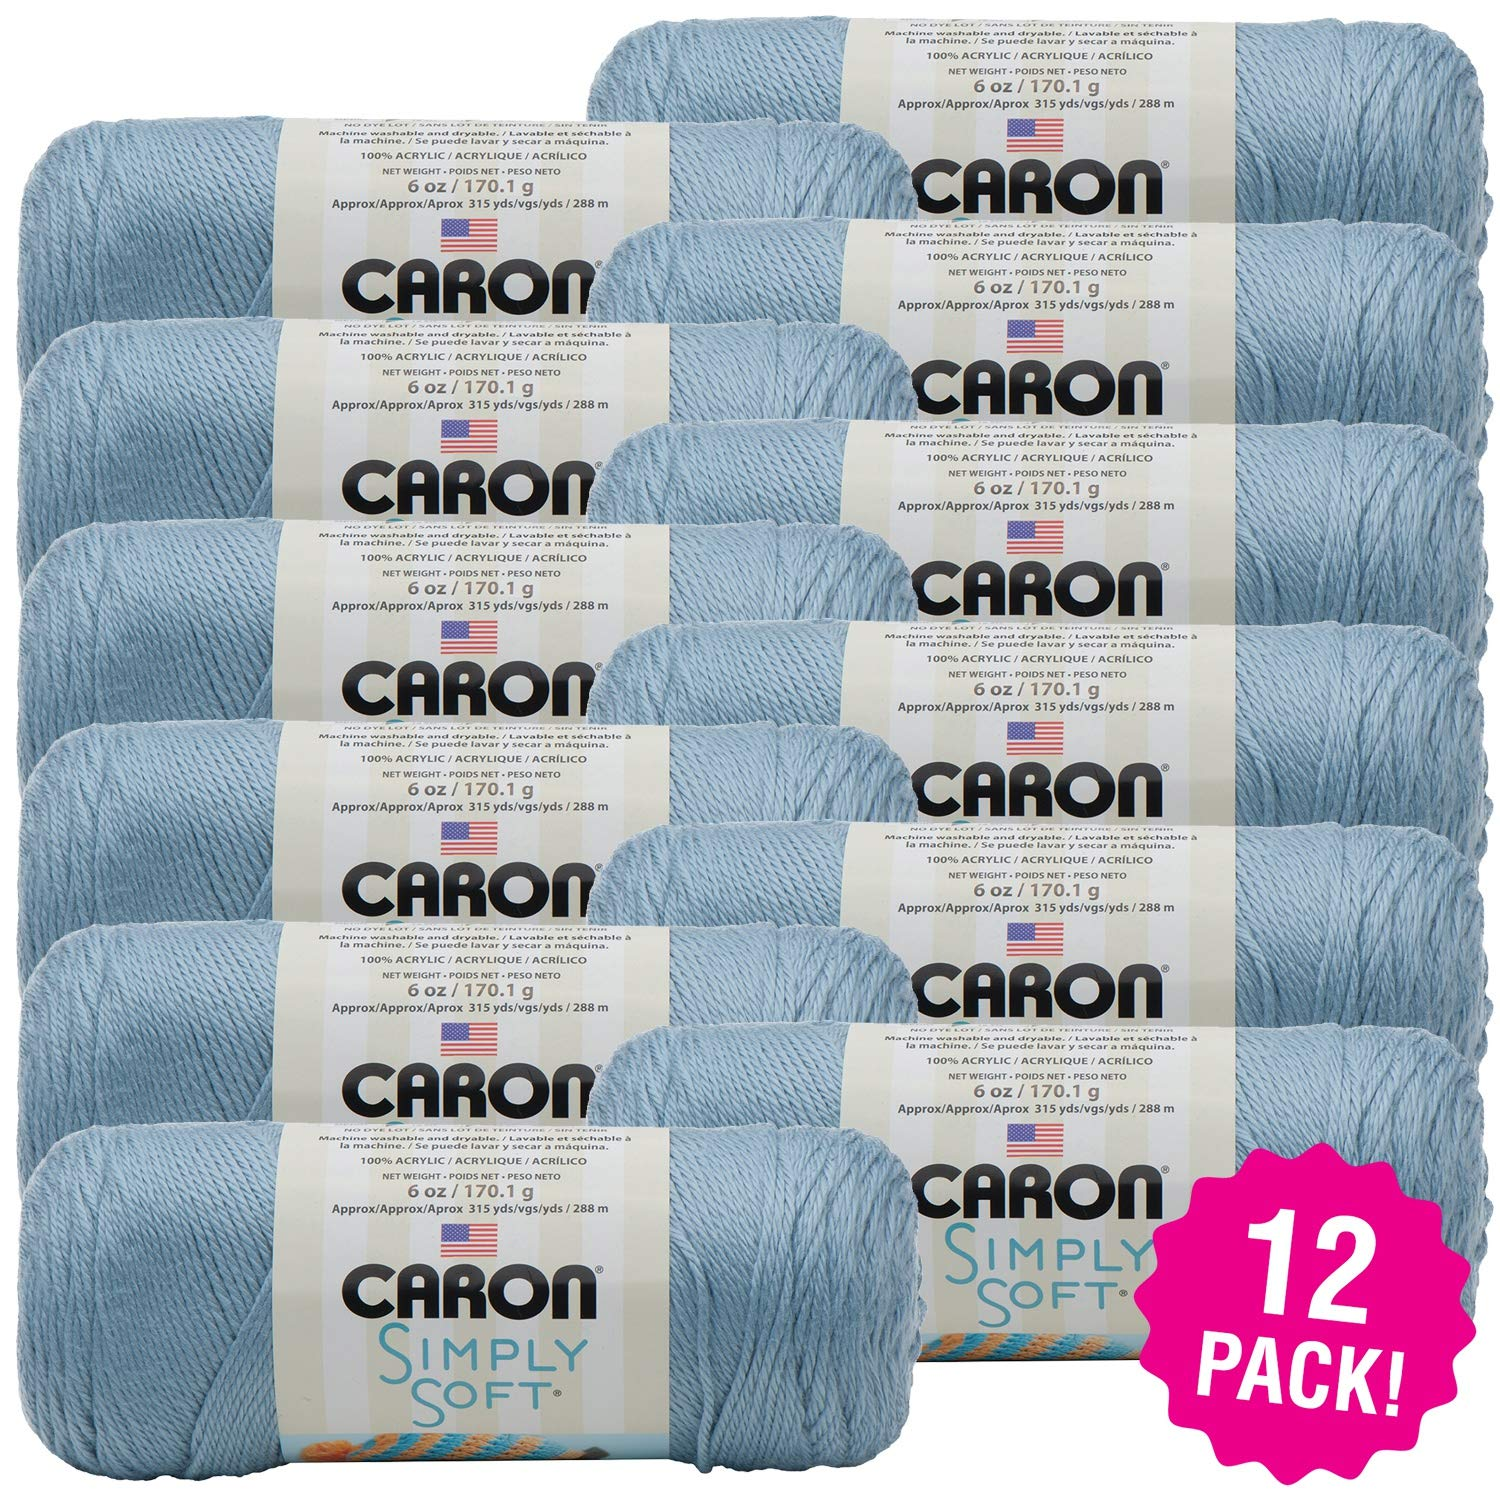 Caron 98082 Simply Soft Solids Yarn-Light Country Blue, Multipack of 12, Pack